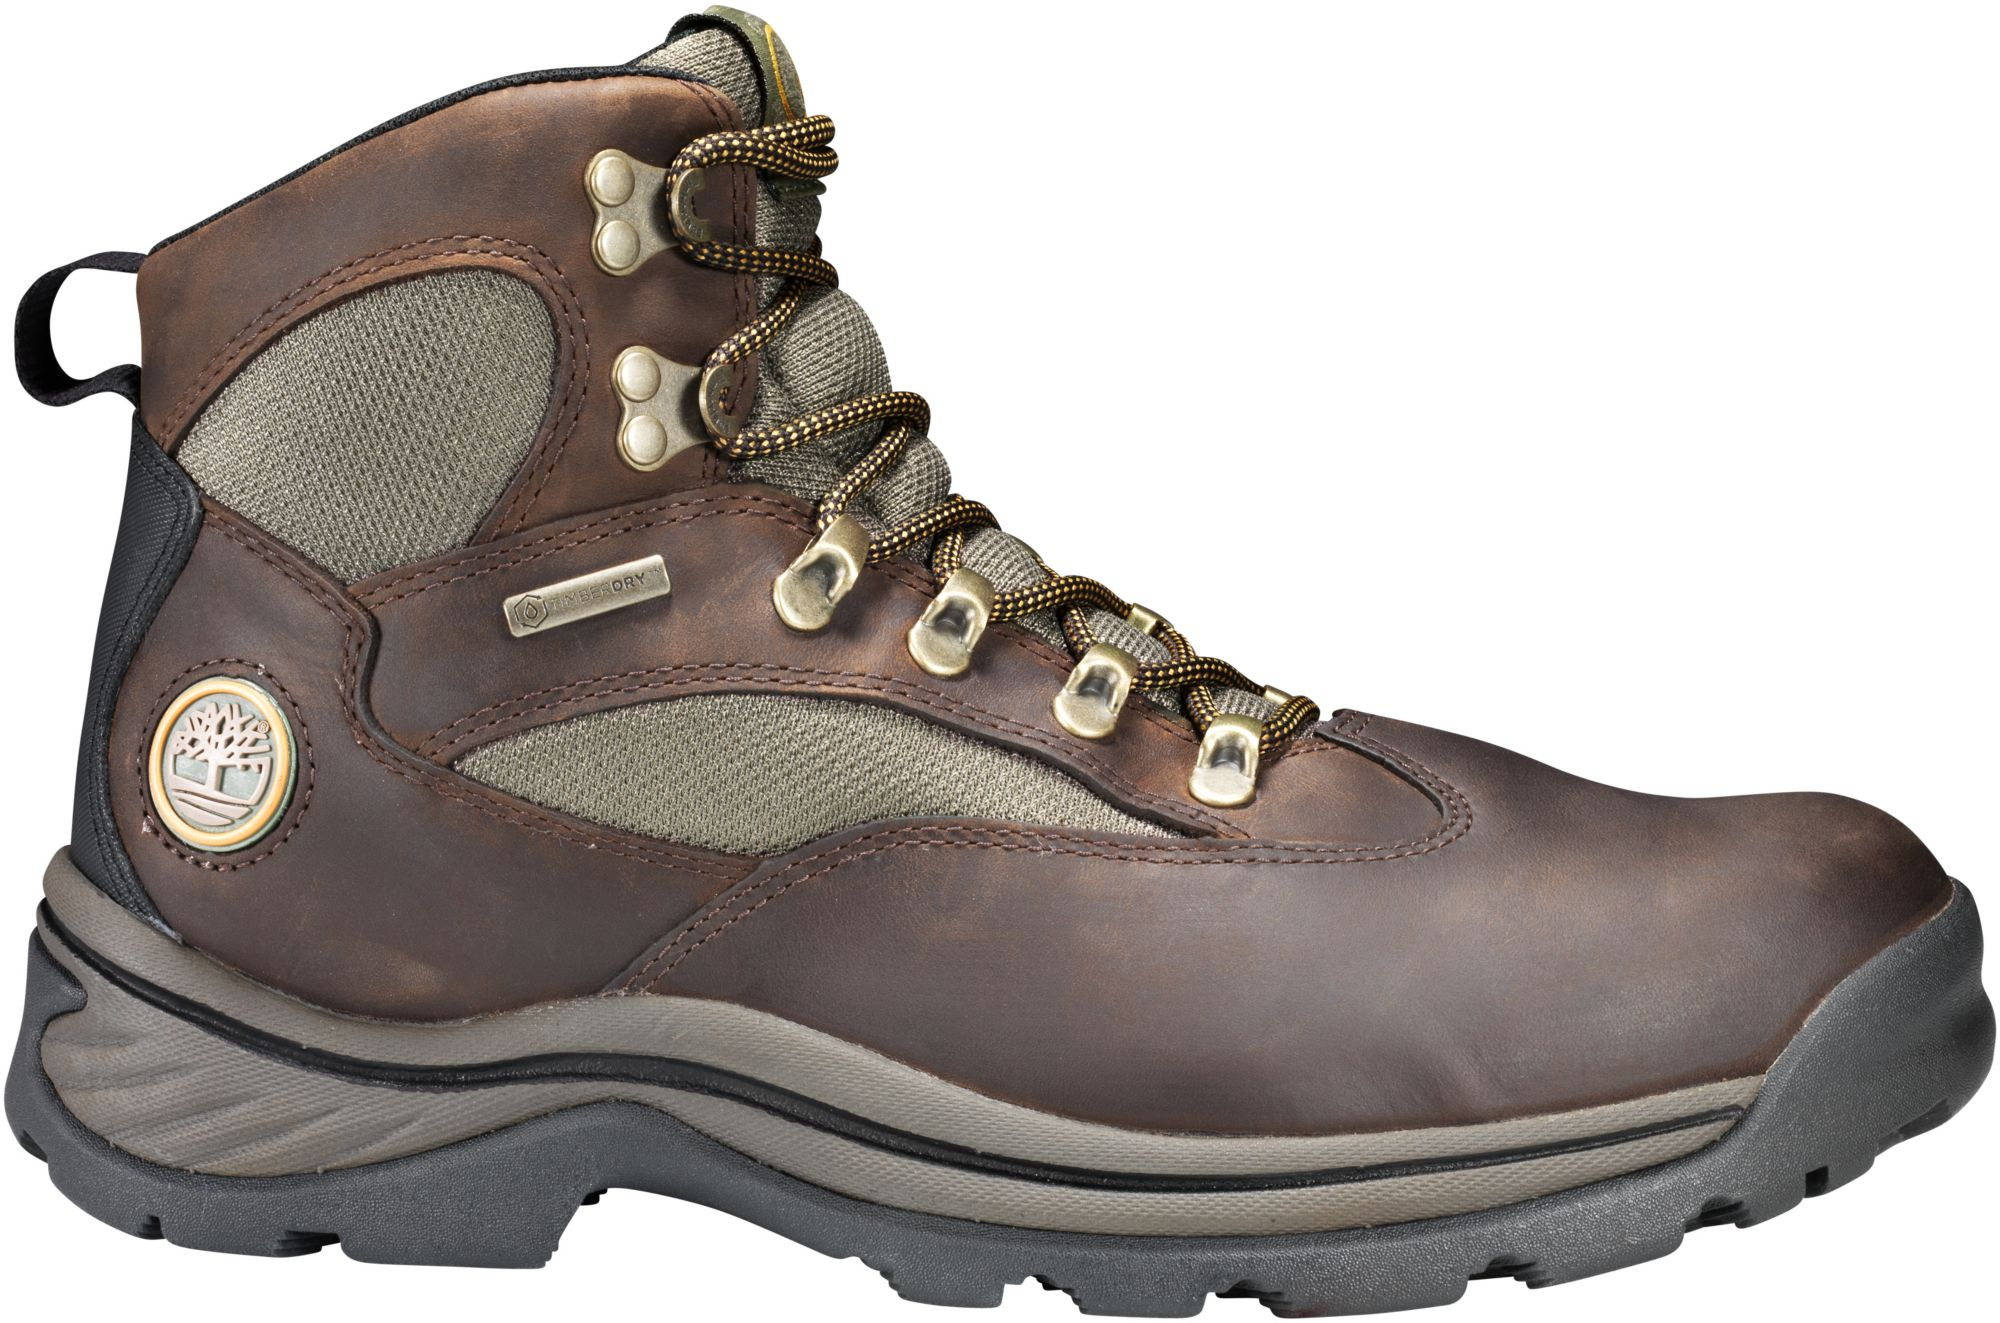 Hiking Boots & Shoes | DICK'S Sporting Goods